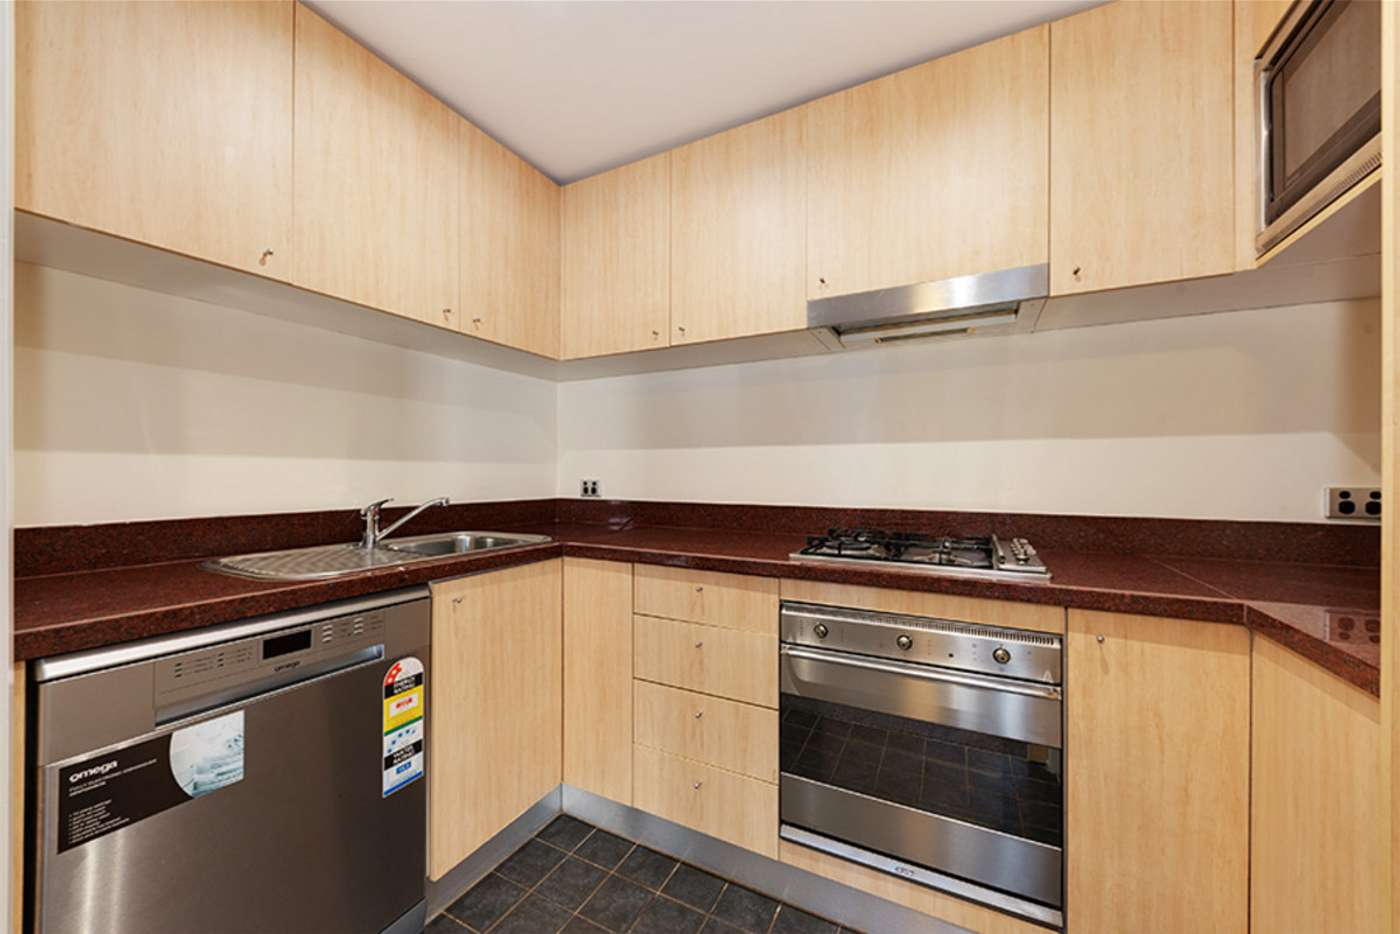 Main view of Homely apartment listing, 602/1 Sergeants Lane, St Leonards NSW 2065